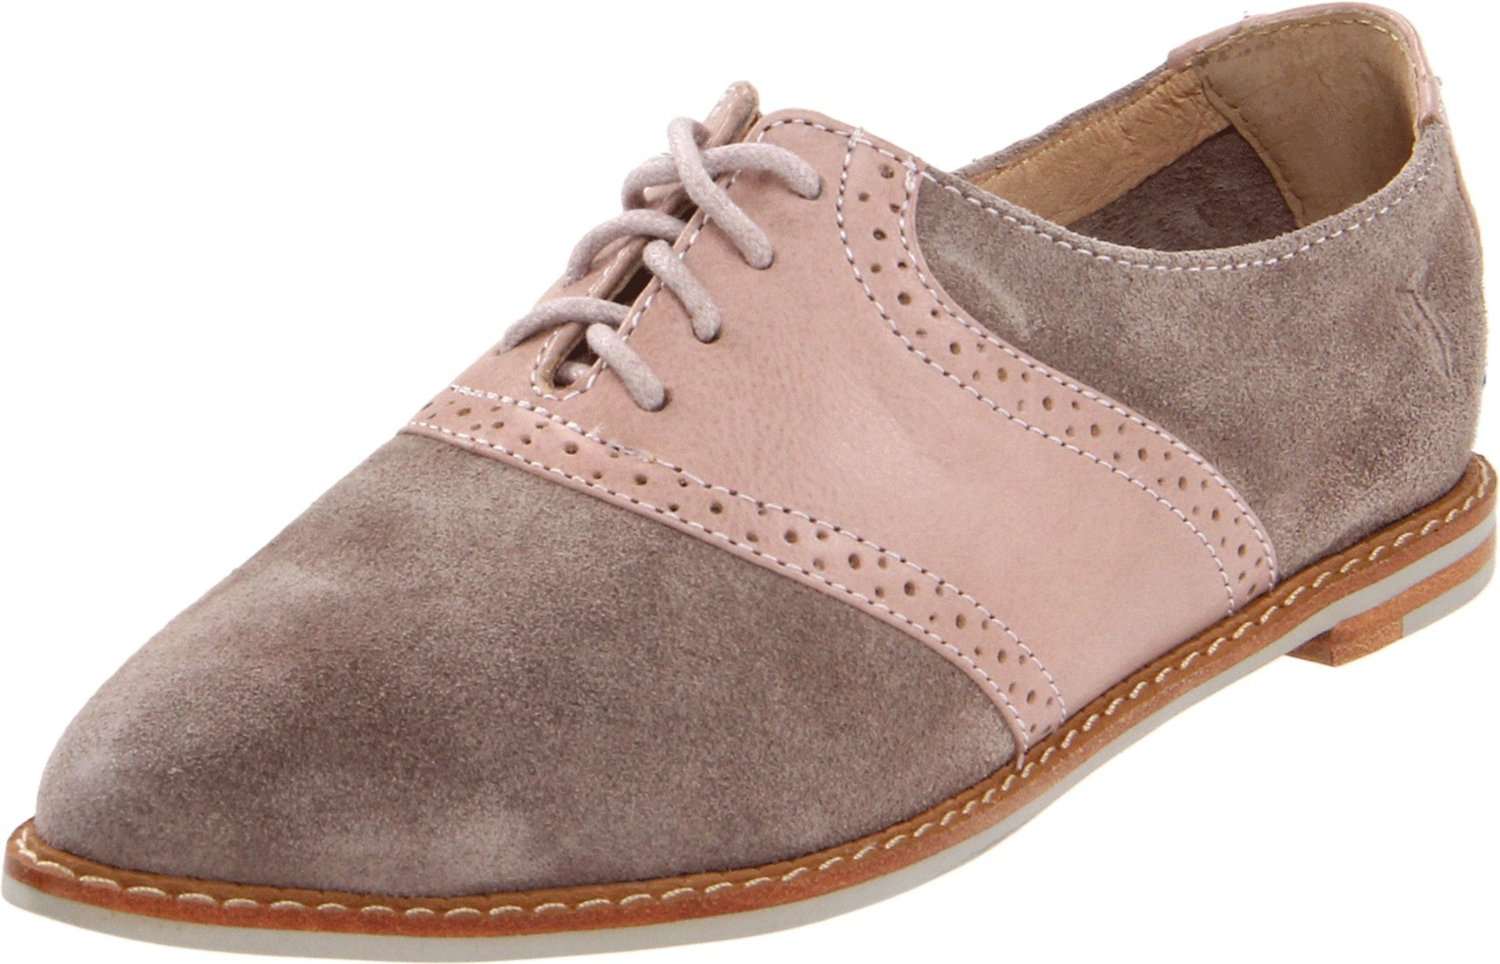 Frye Oxford Womens Shoes